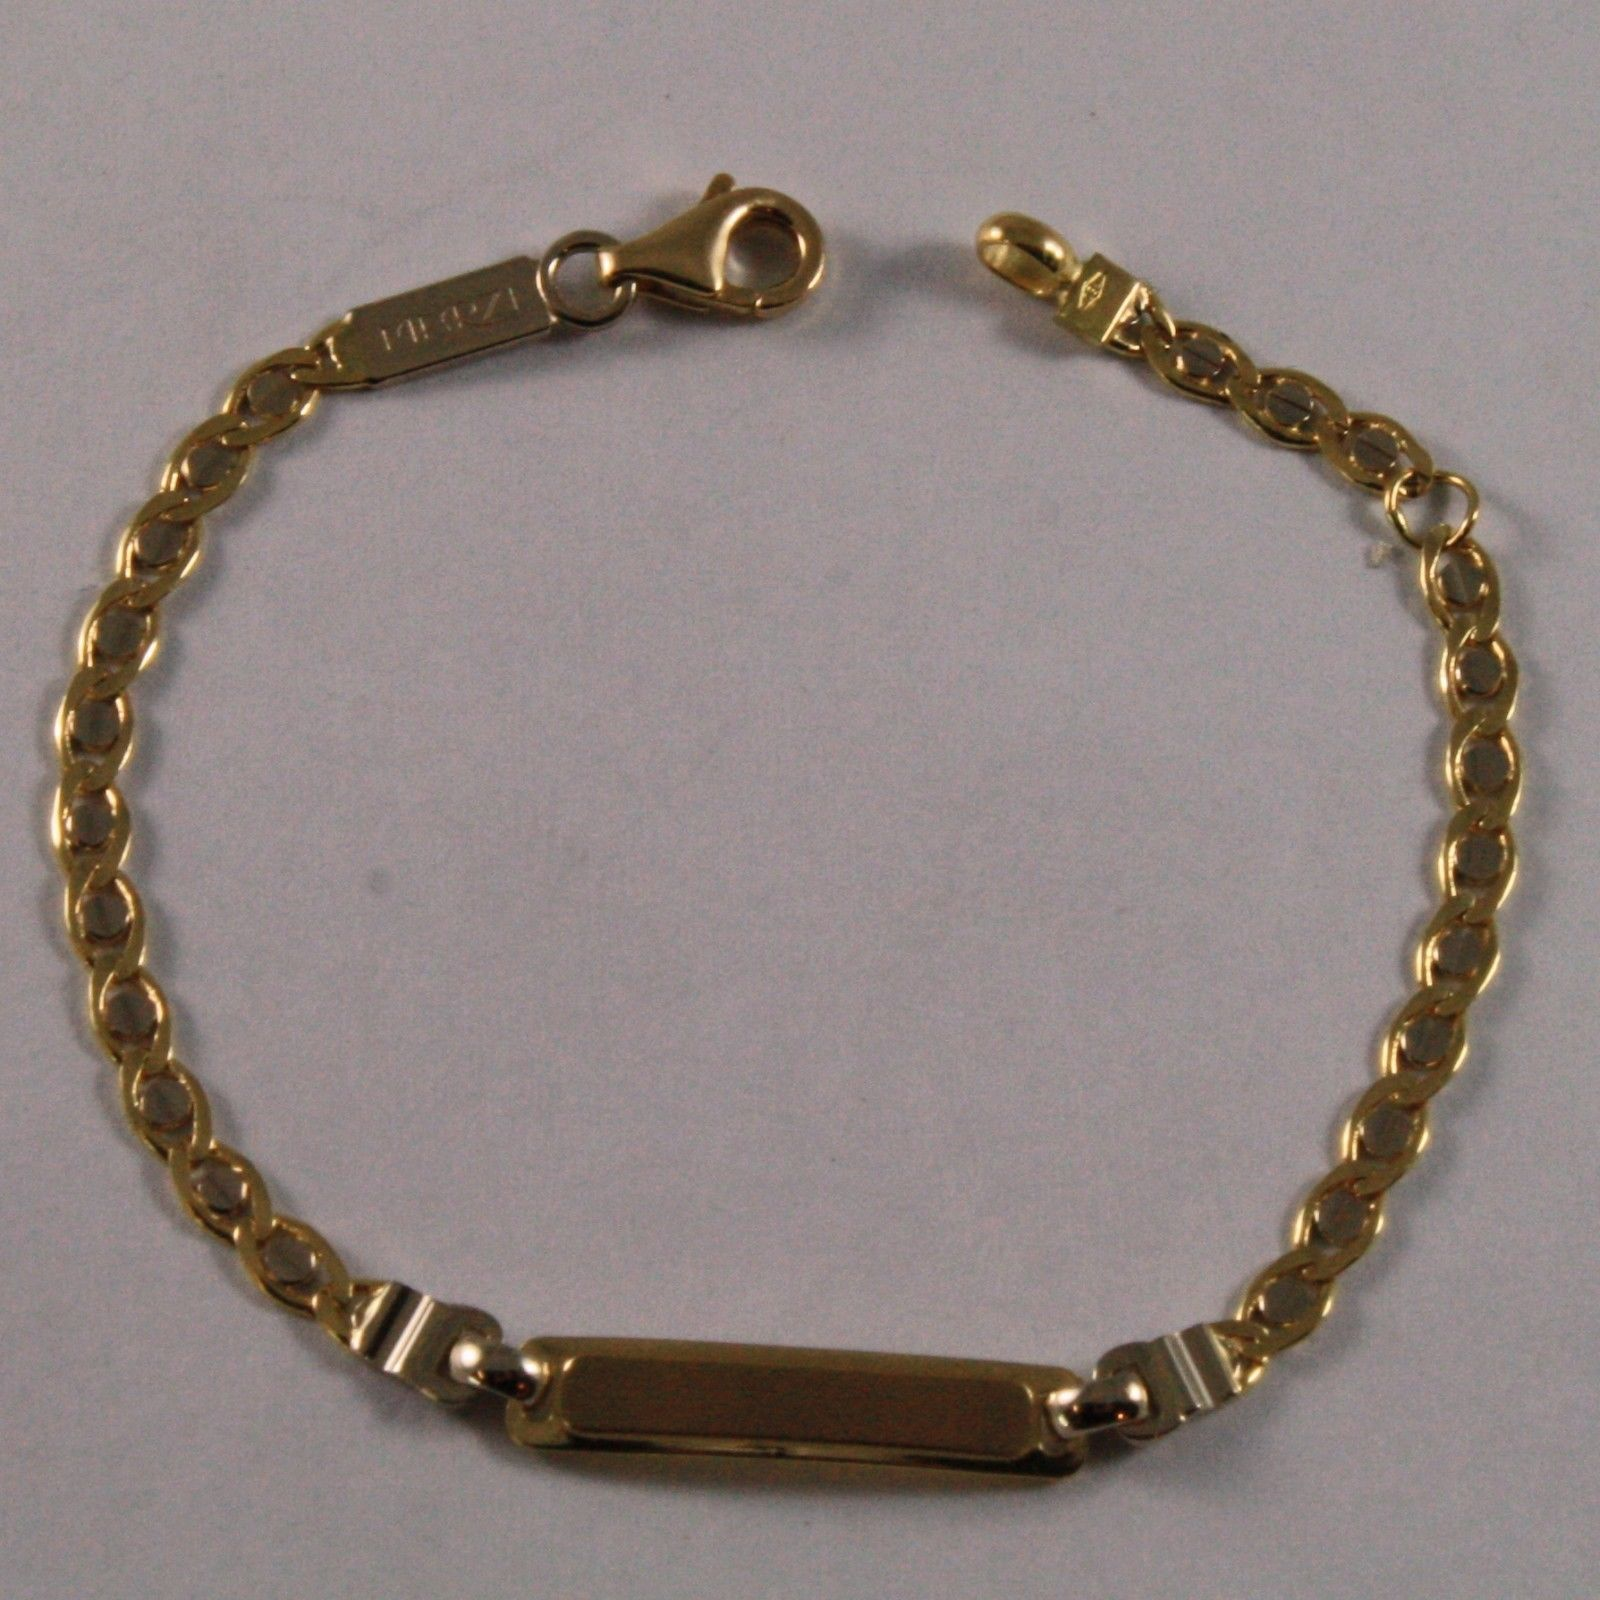 SOLID 18K YELLOW GOLD BRACELET, 5.51 INCHES,ENGRAVING PLATE, FOR CHILDREN.